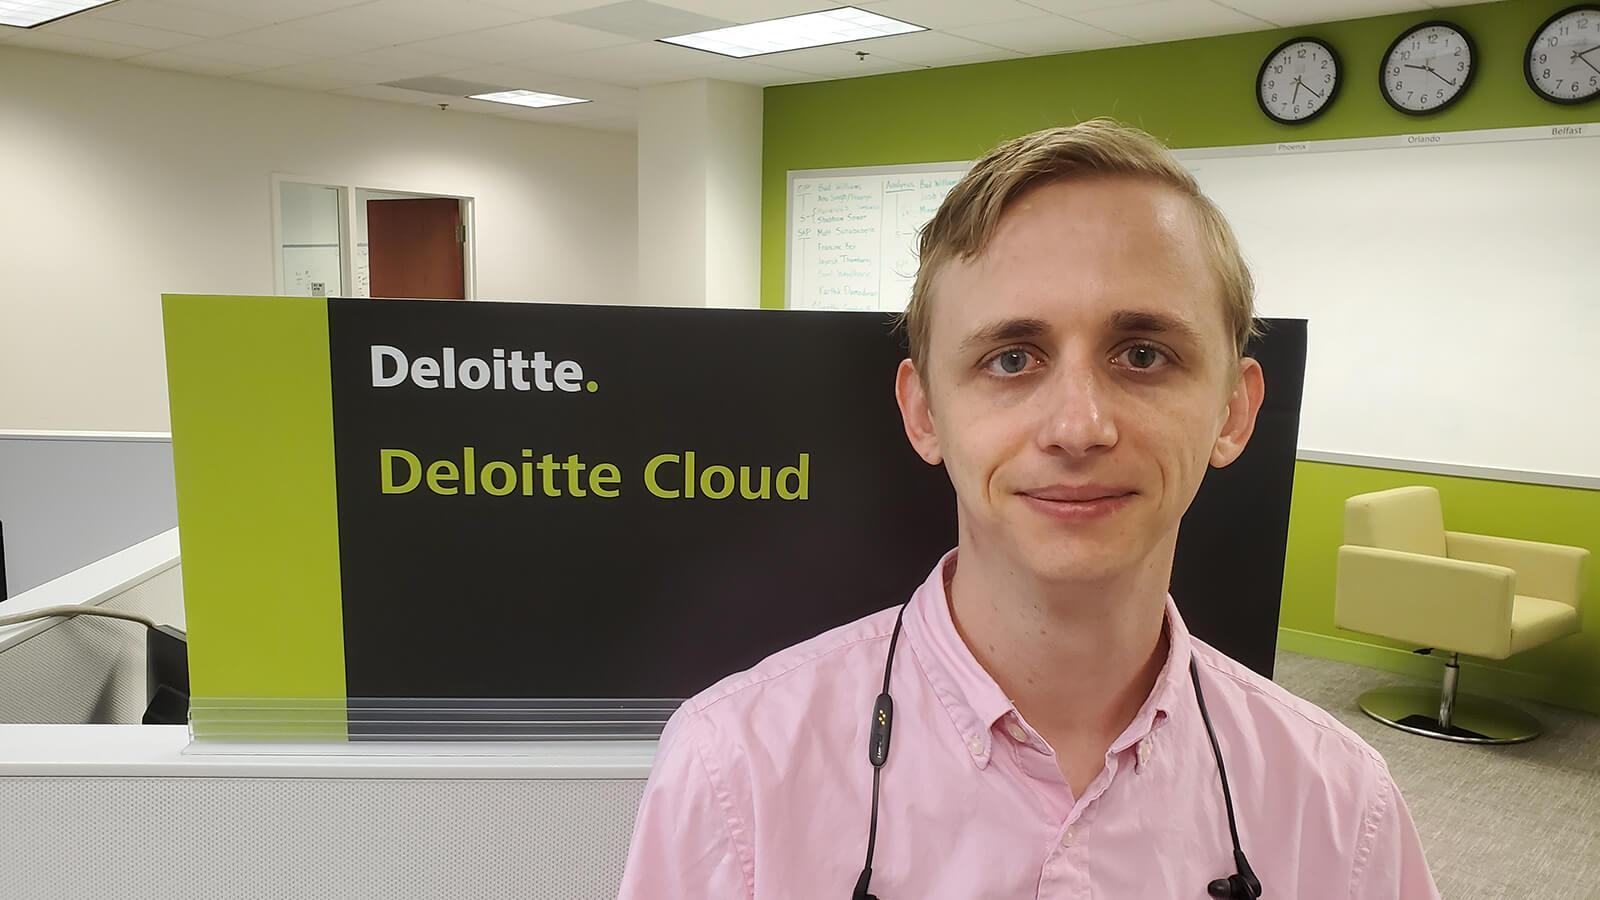 This Grad Helps Clients Execute Cloud-Based Solutions for Business - Hero image